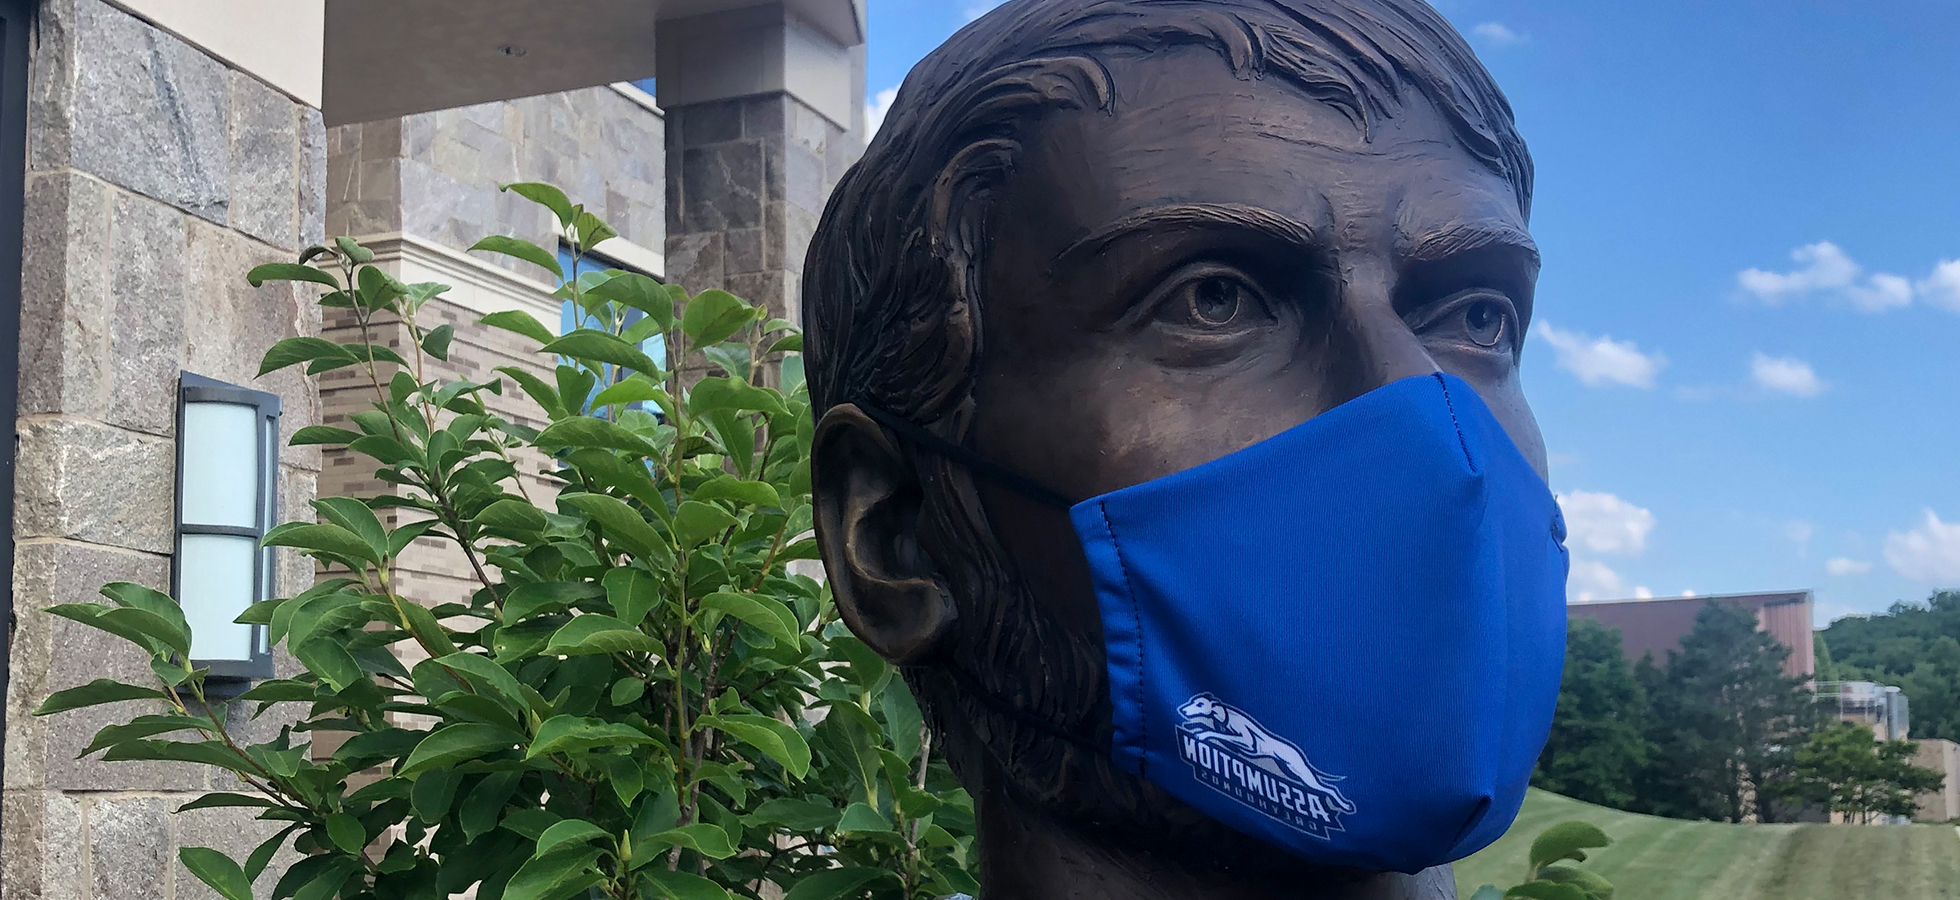 Photo of St. Augustine wearing an Assumption blue face mask outside of the Tsotsis Family Academic Center.